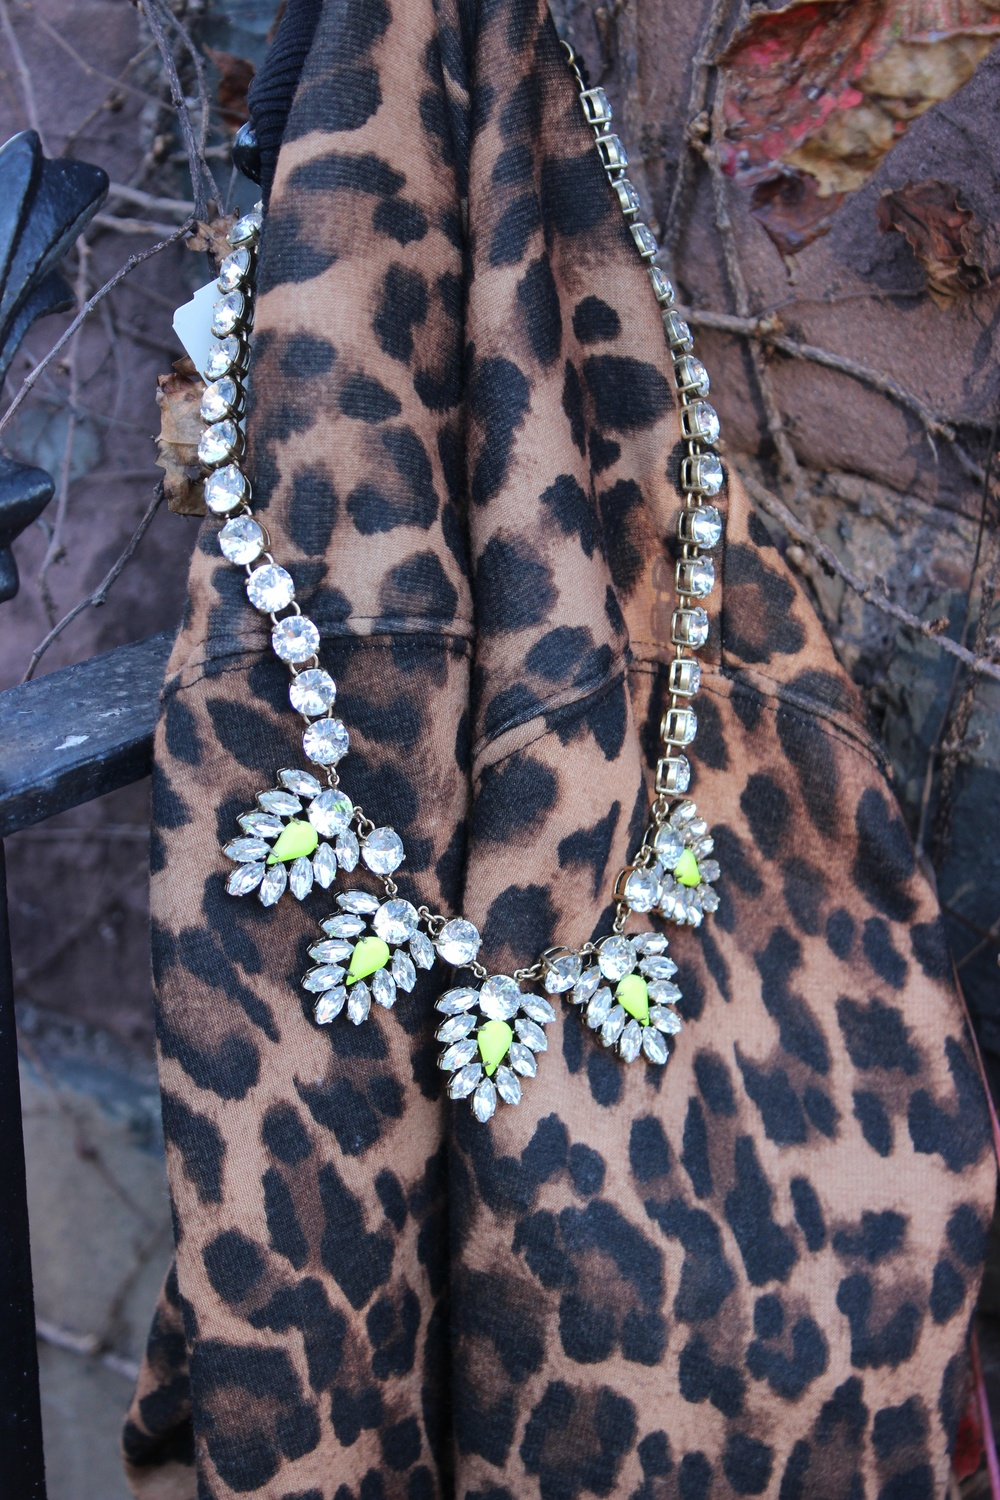 leopard necklace closeup.jpg